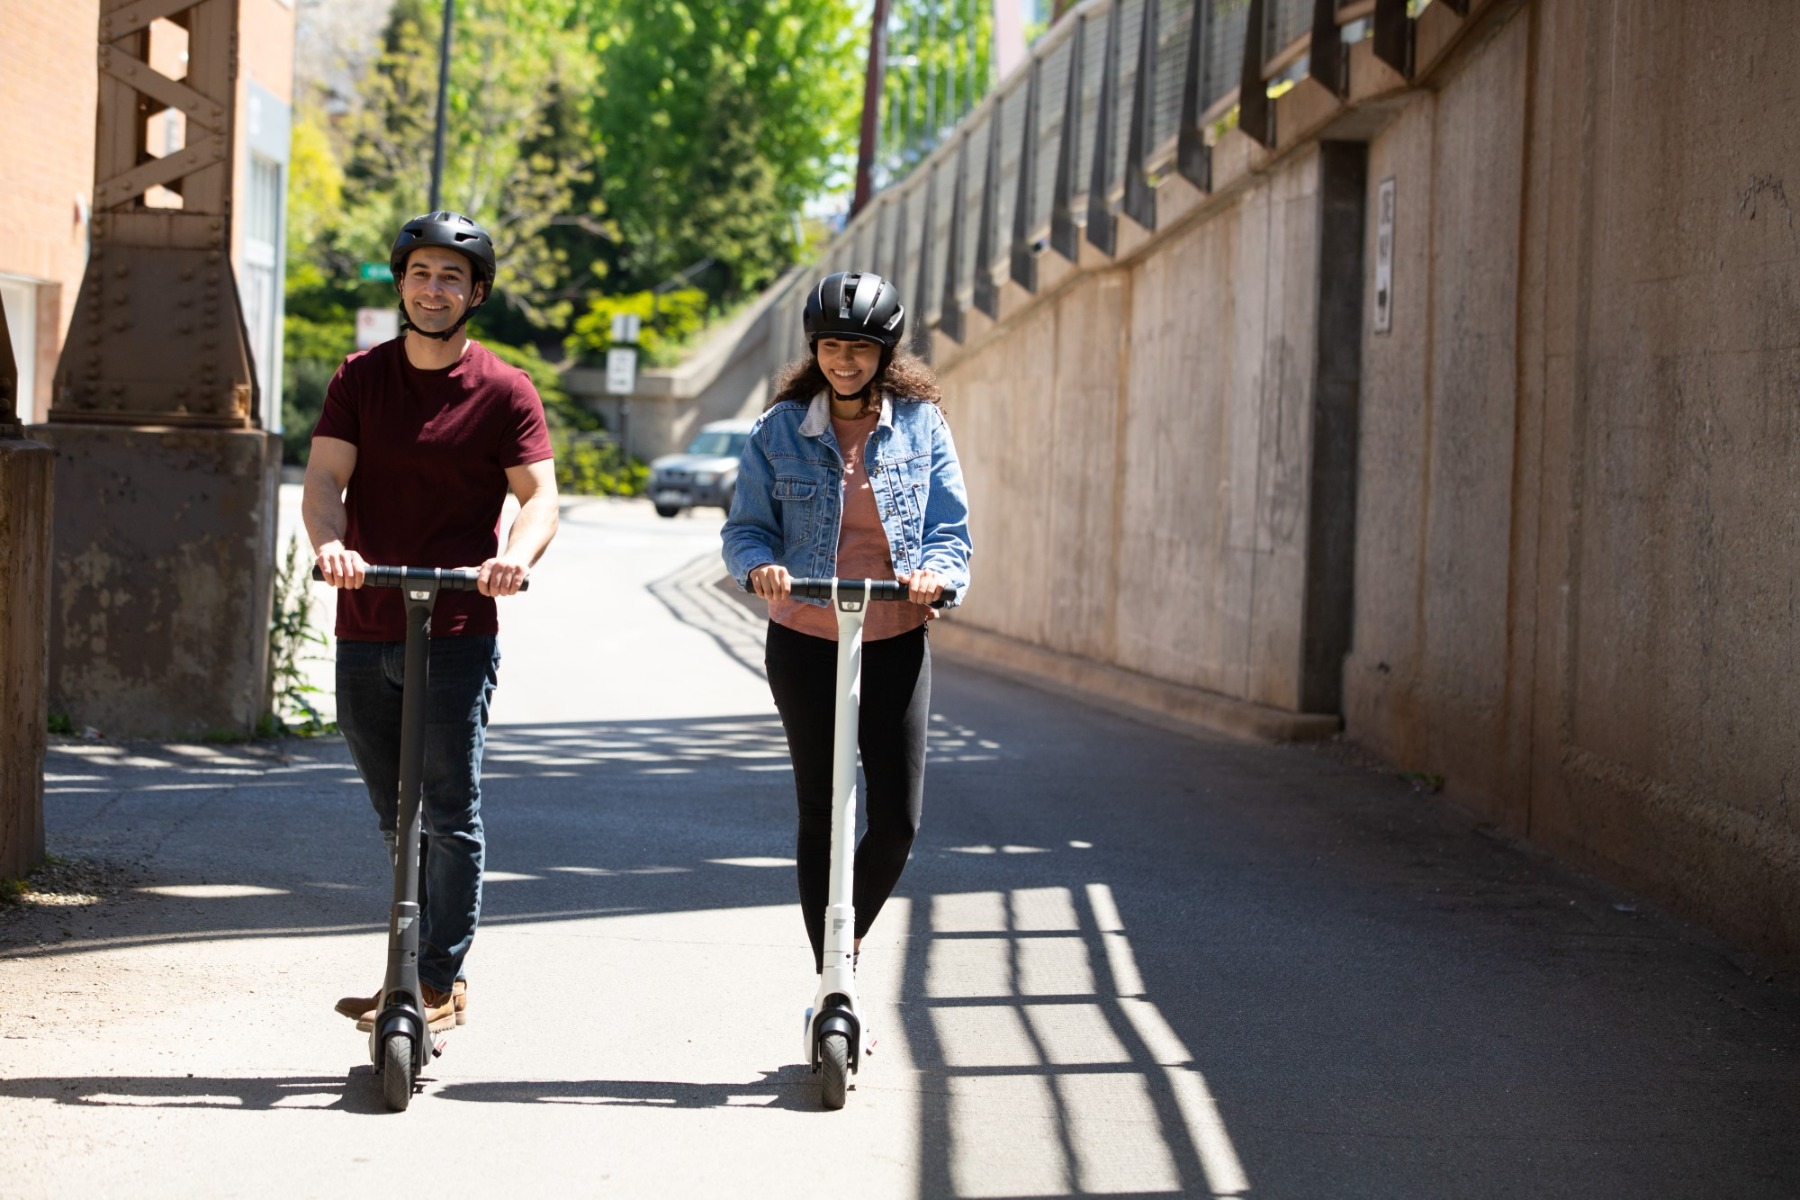 Two adults riding Flyer S533 electric scooters in the city